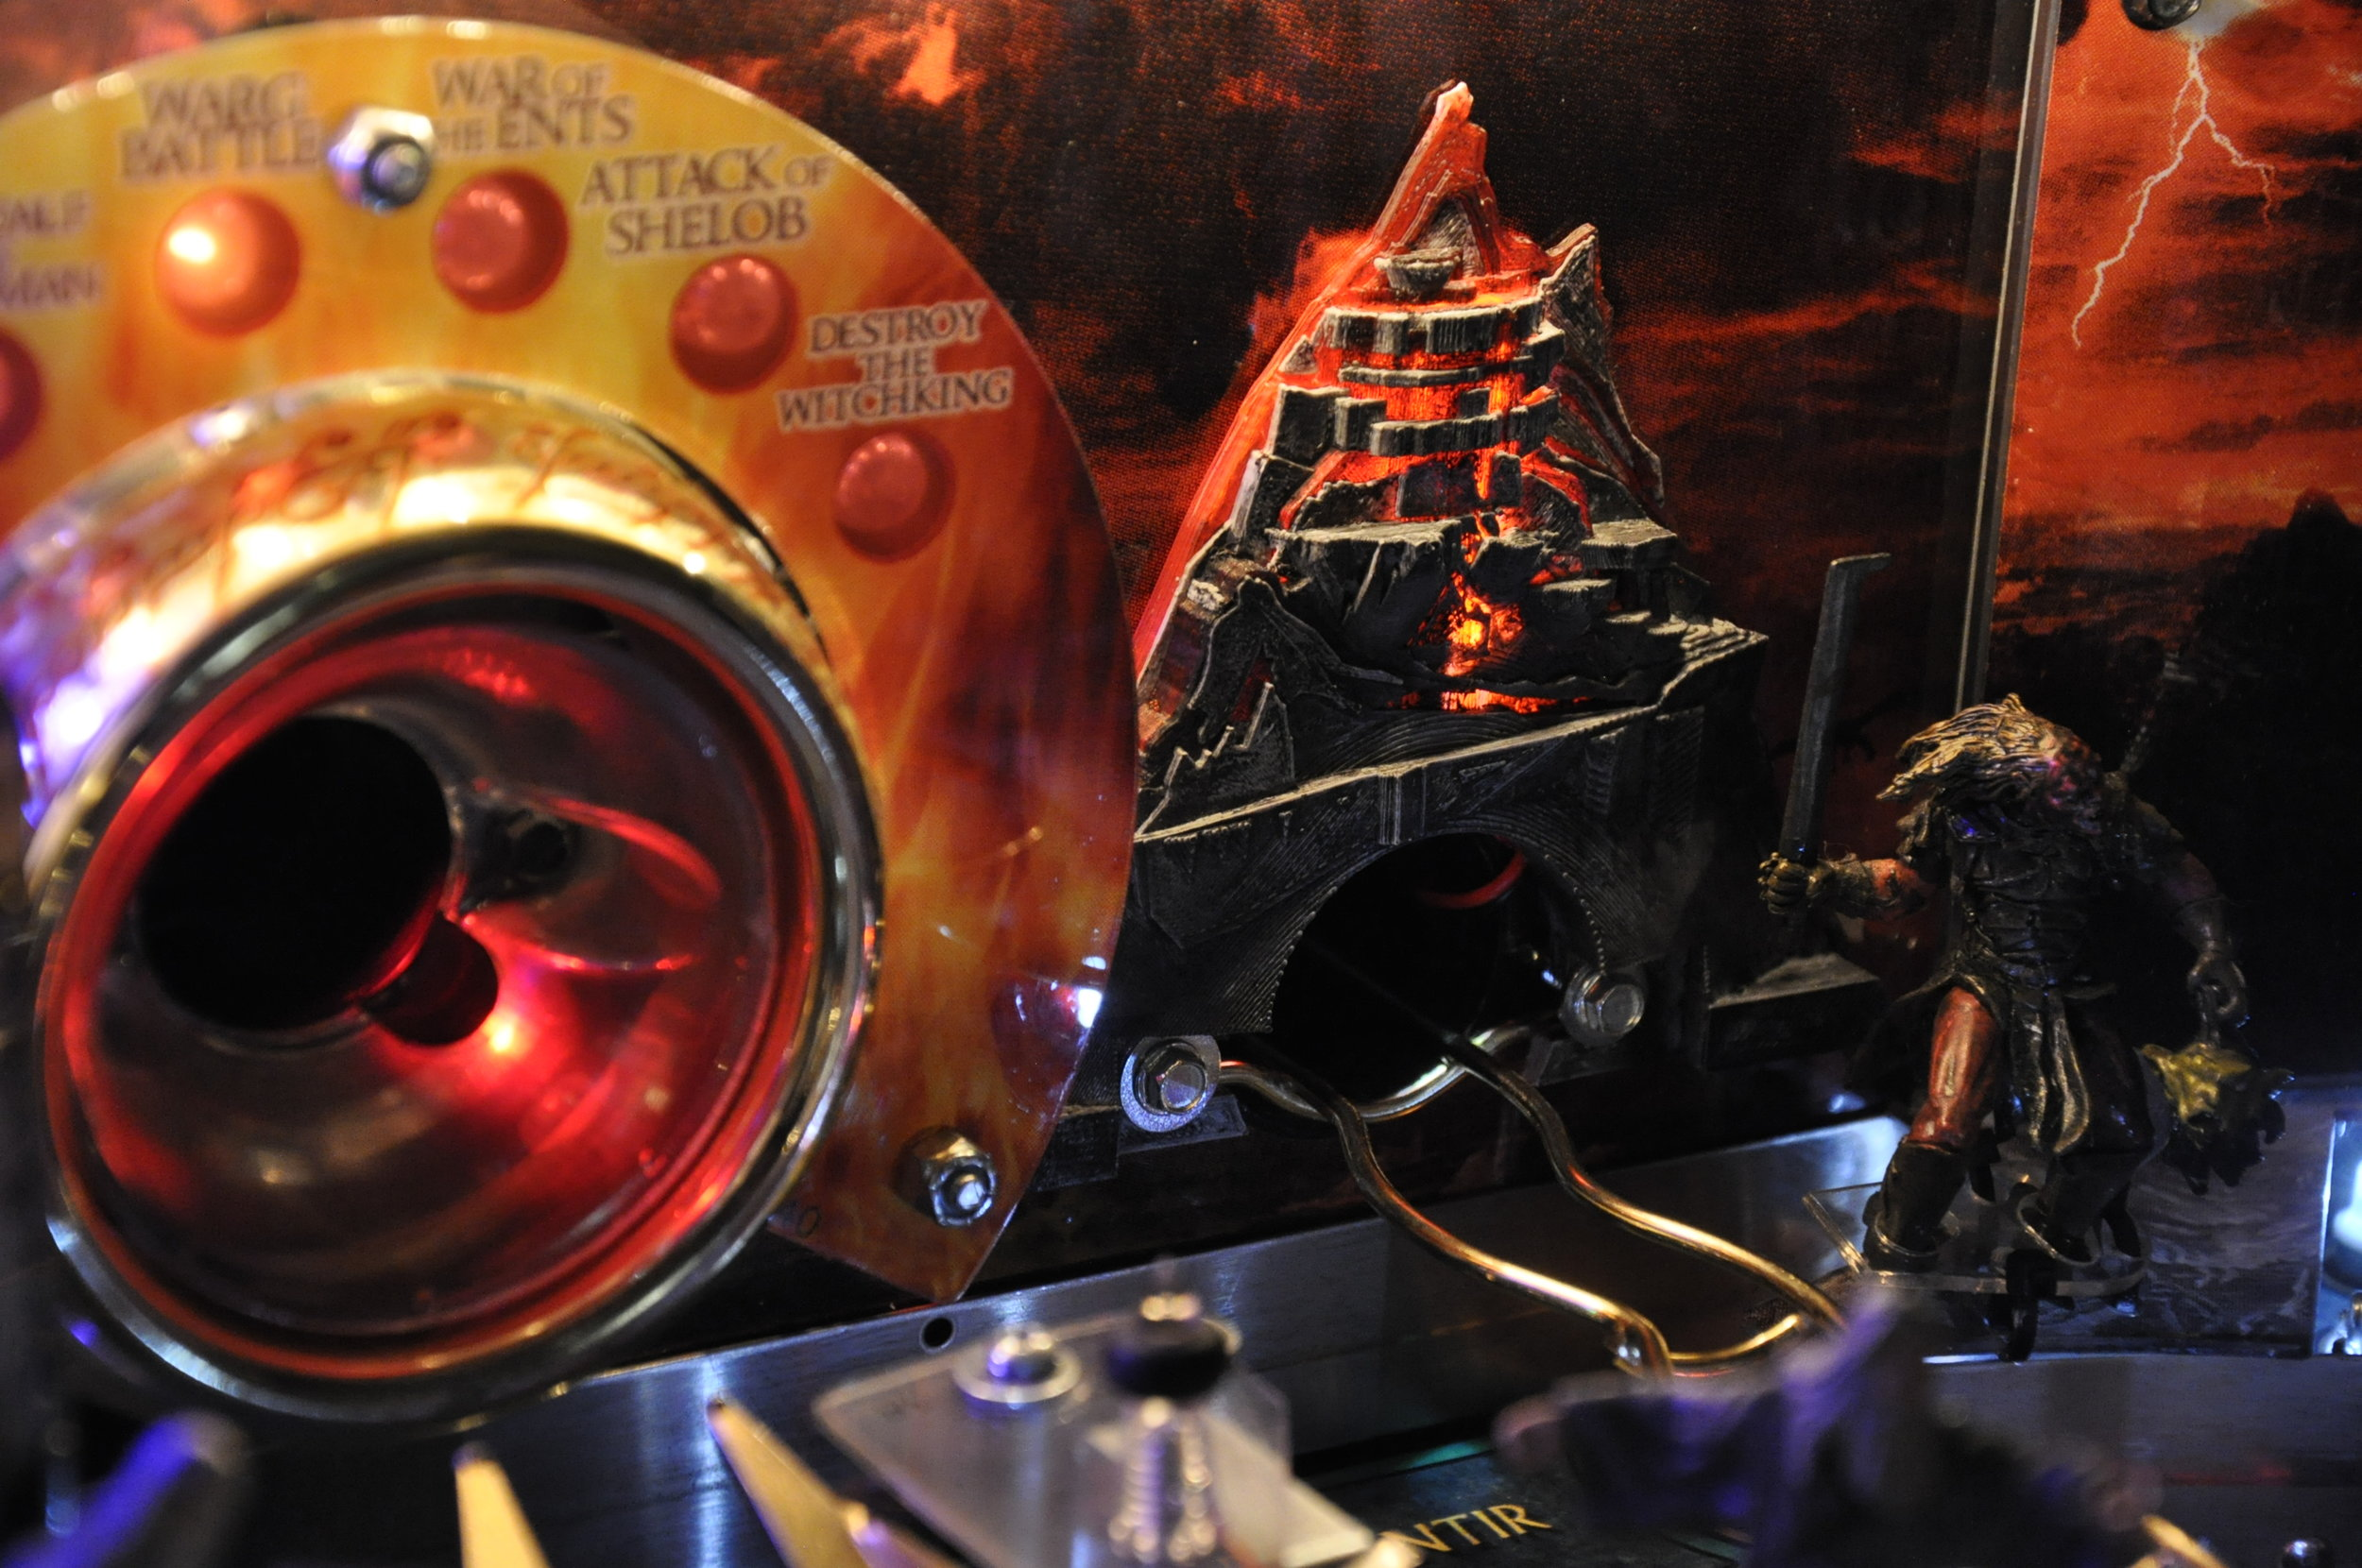 Volcano Mod - Mt. Doom Replacement - Stern's Lord of the Rings Pinball Machine